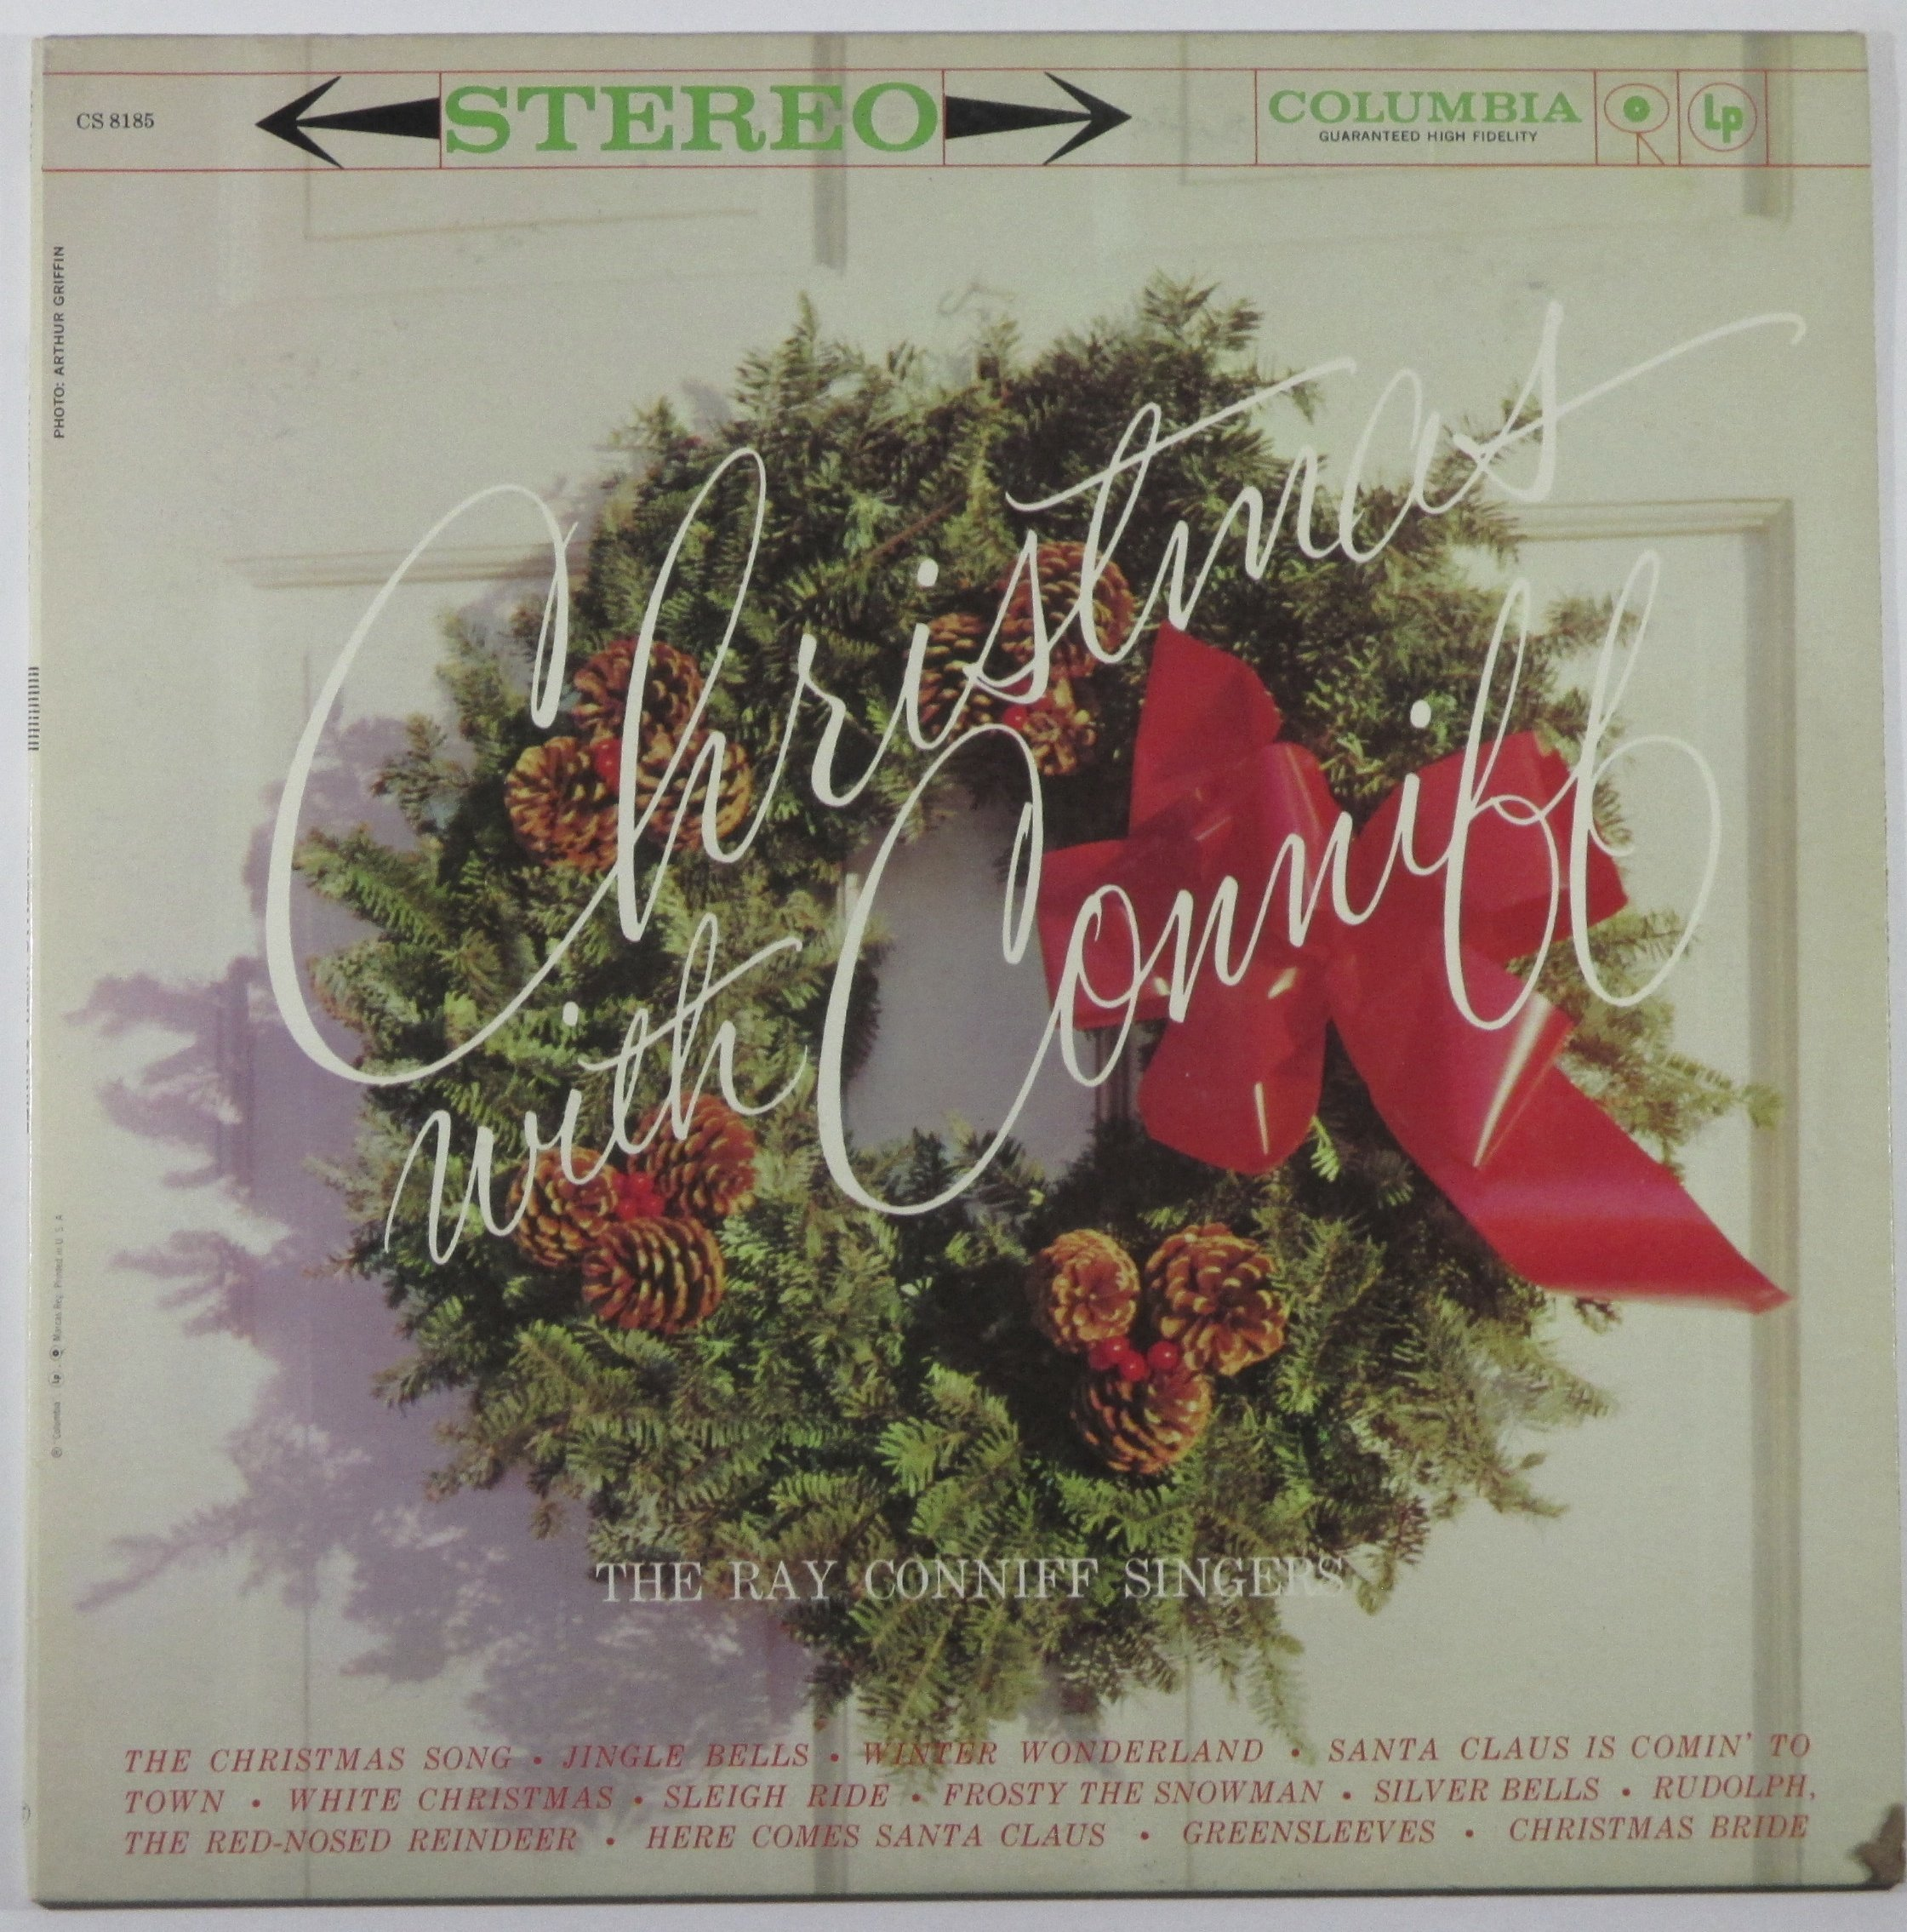 Christmas with Conniff [Vinyl] by Columbia